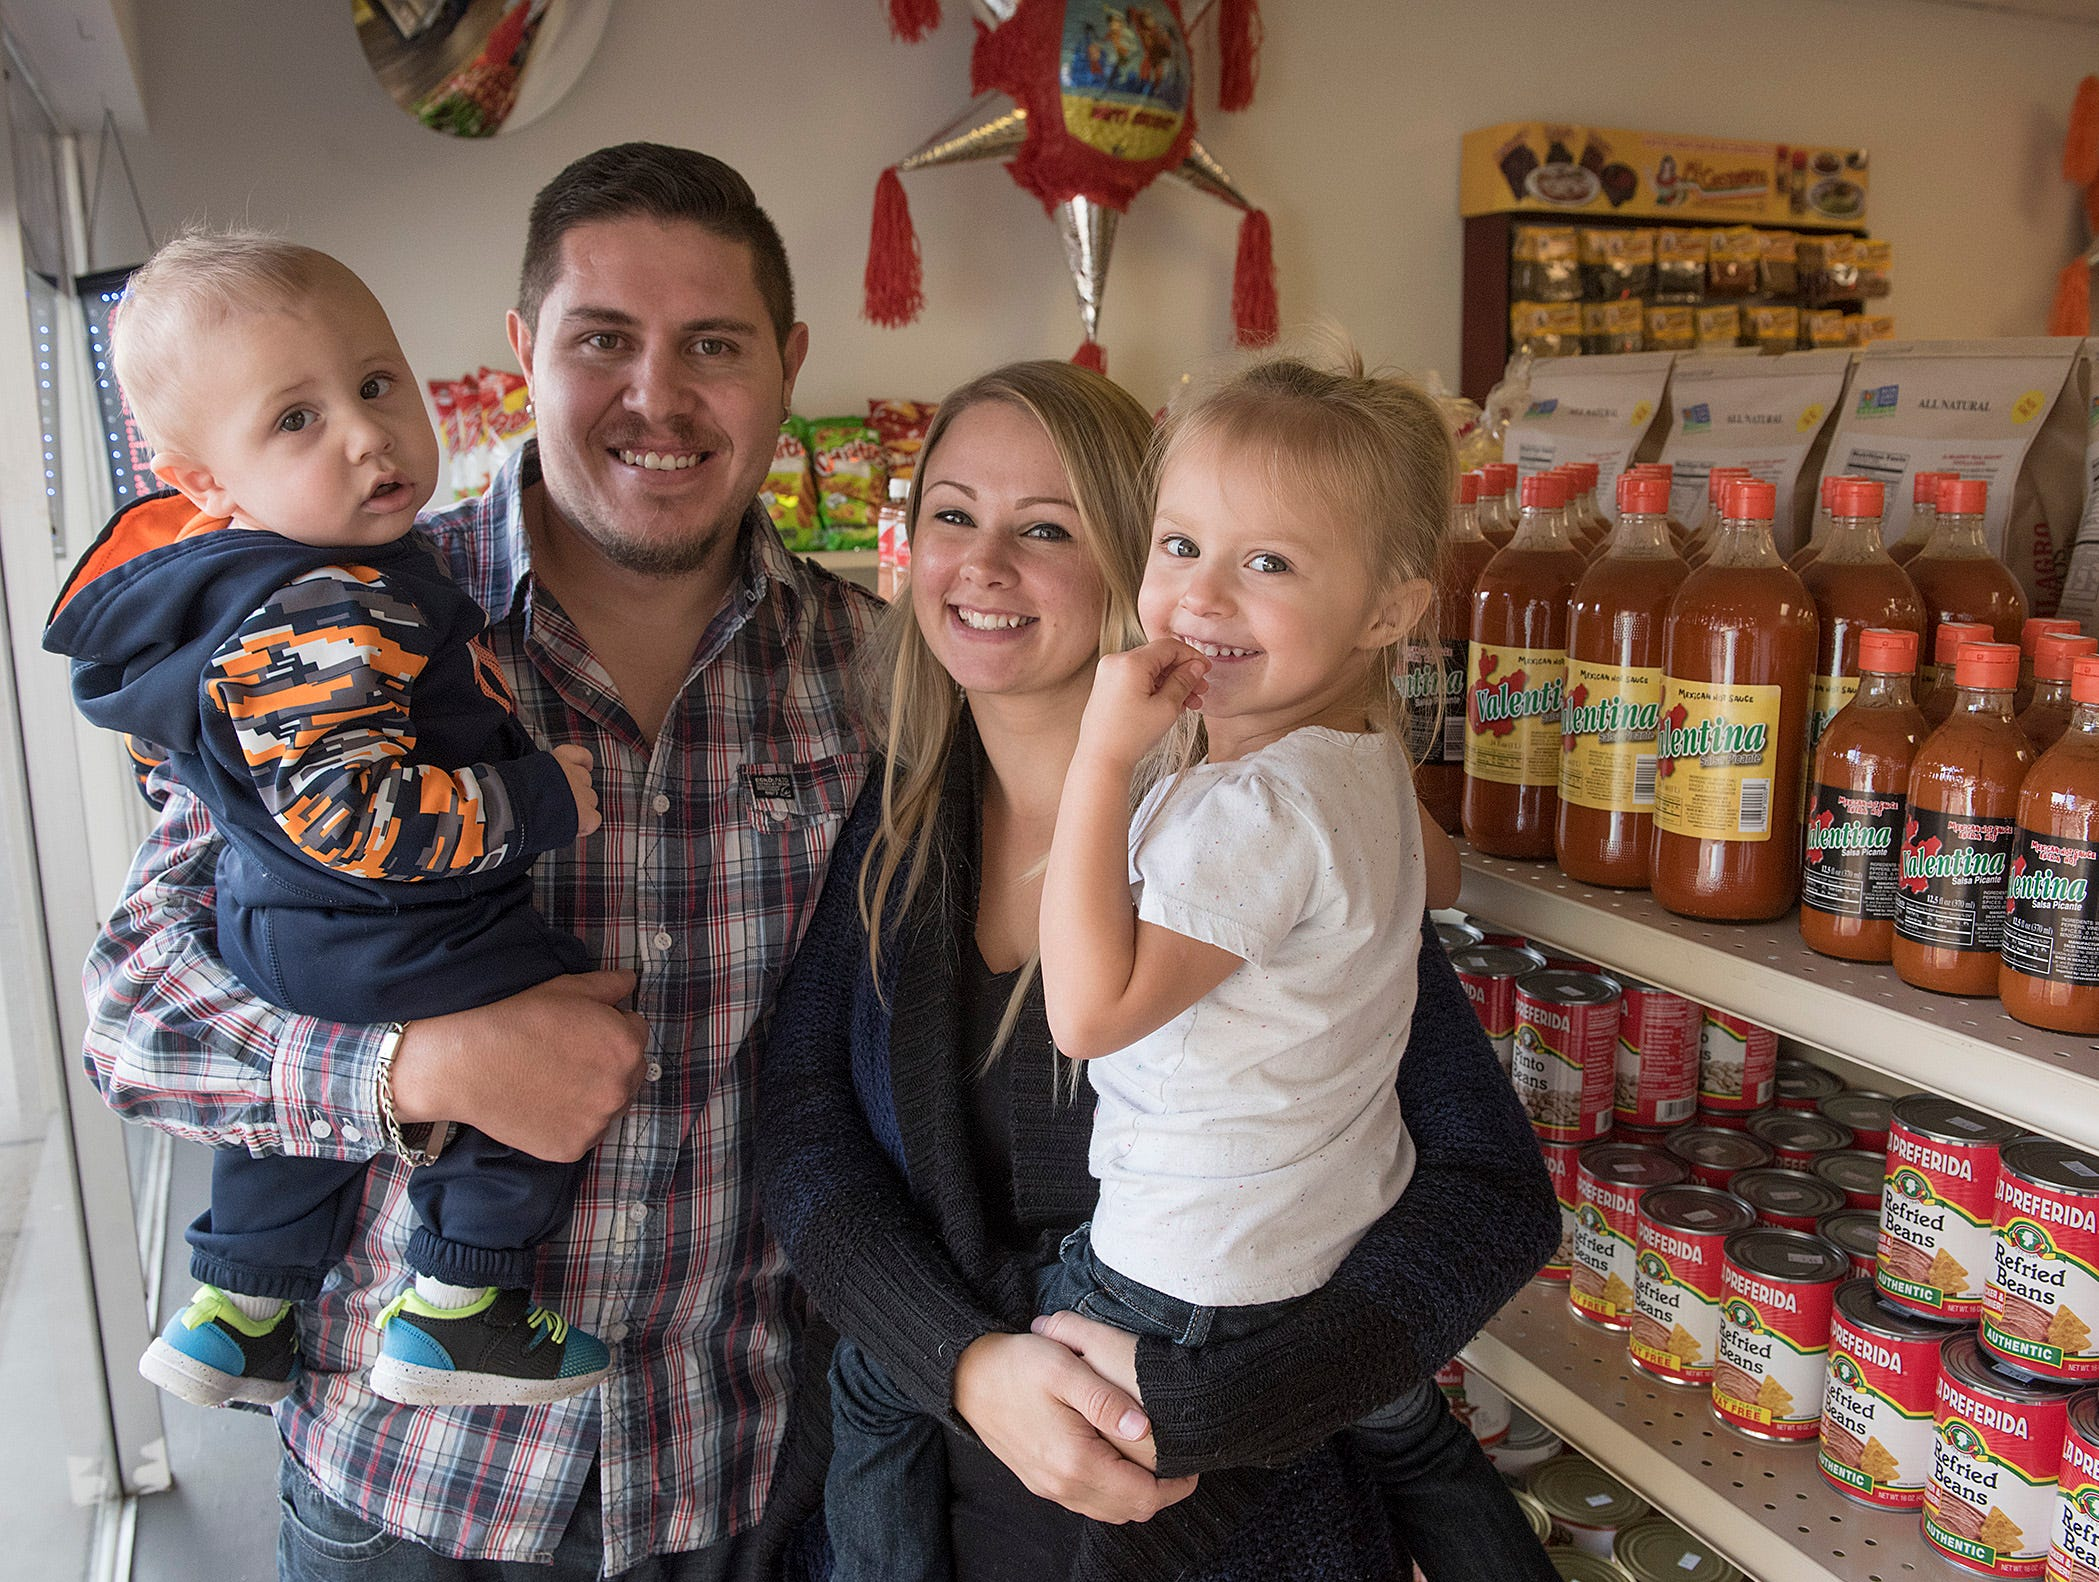 Francisco and Erin Penaloza opened their store in Livonia. Geovani, 10 months old, and Penelope, 3 years old, spend time there, too.